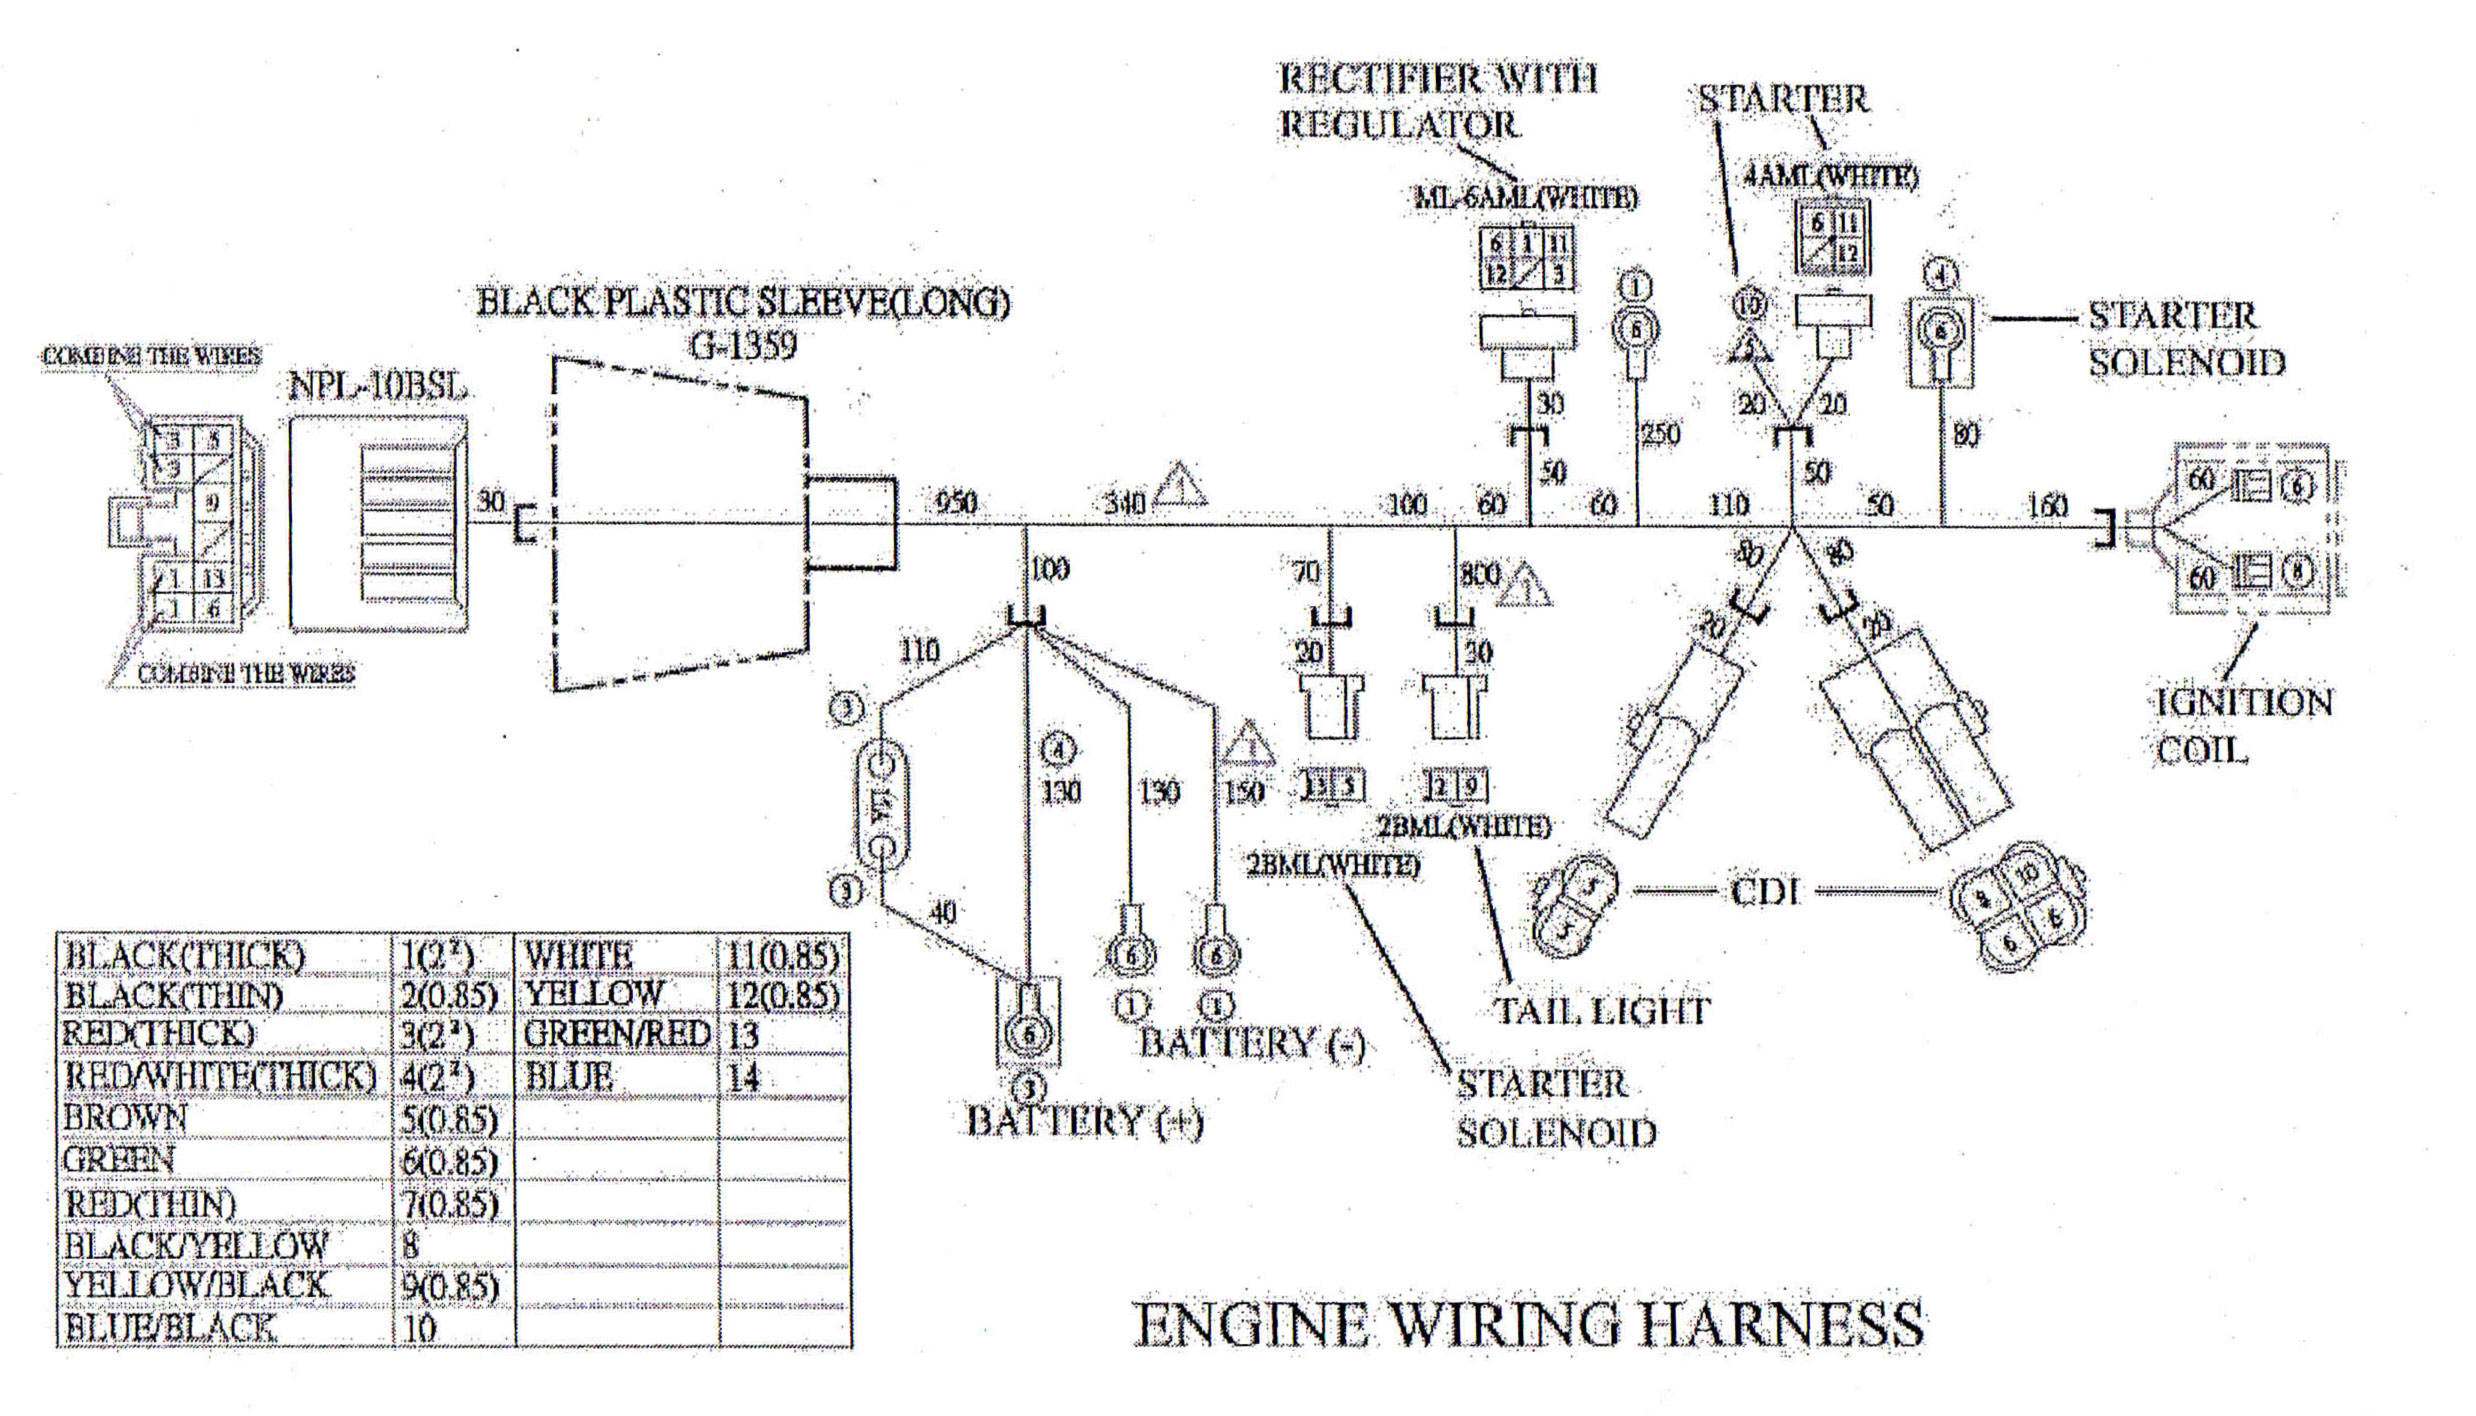 Go Kart Engine Diagram - Wiring Diagrams Plug Hammerhead Twister Cc Wiring Diagram on